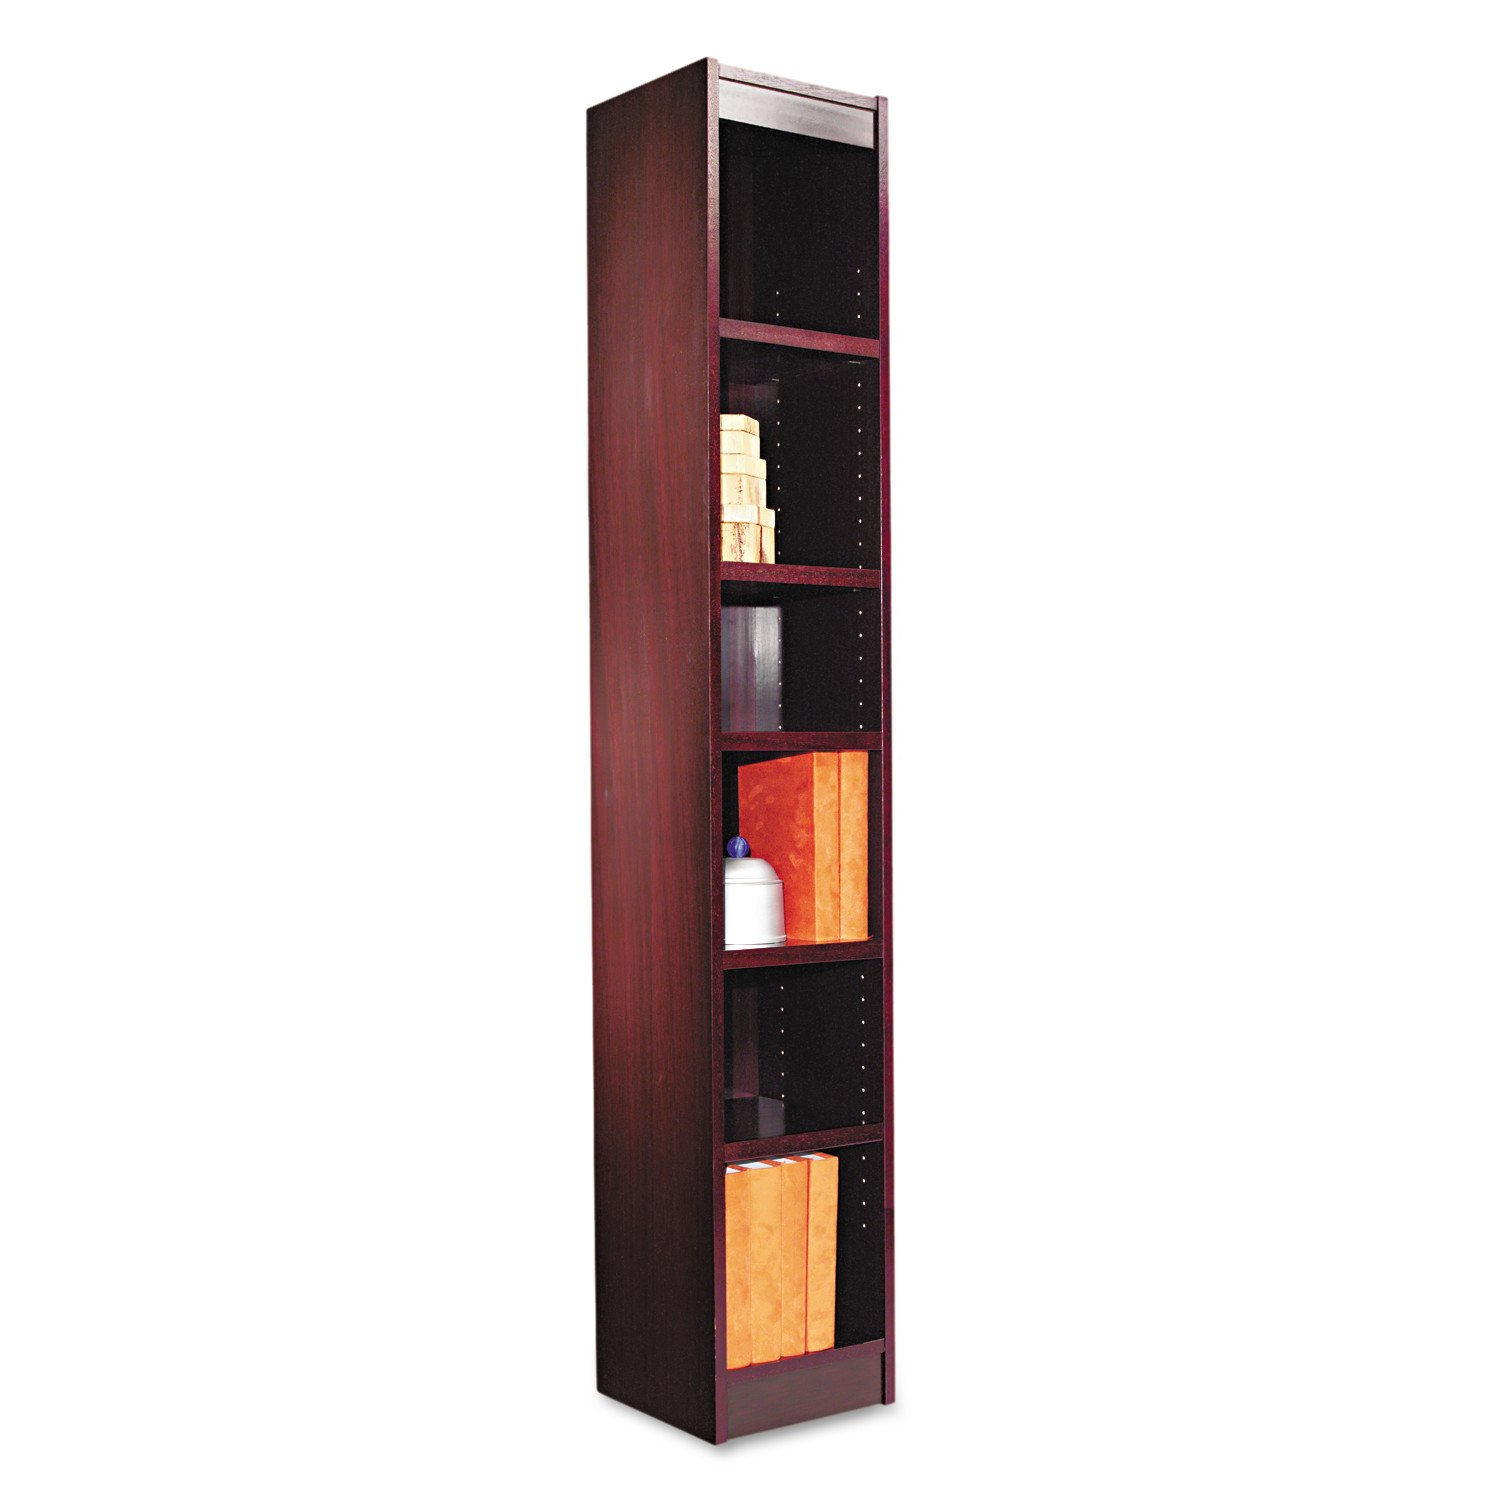 Alera Narrow Profile Bookcase, Finished Back, Wood Veneer, 6-Shelf, 12 W by 12 D by 72 H, Mahogany